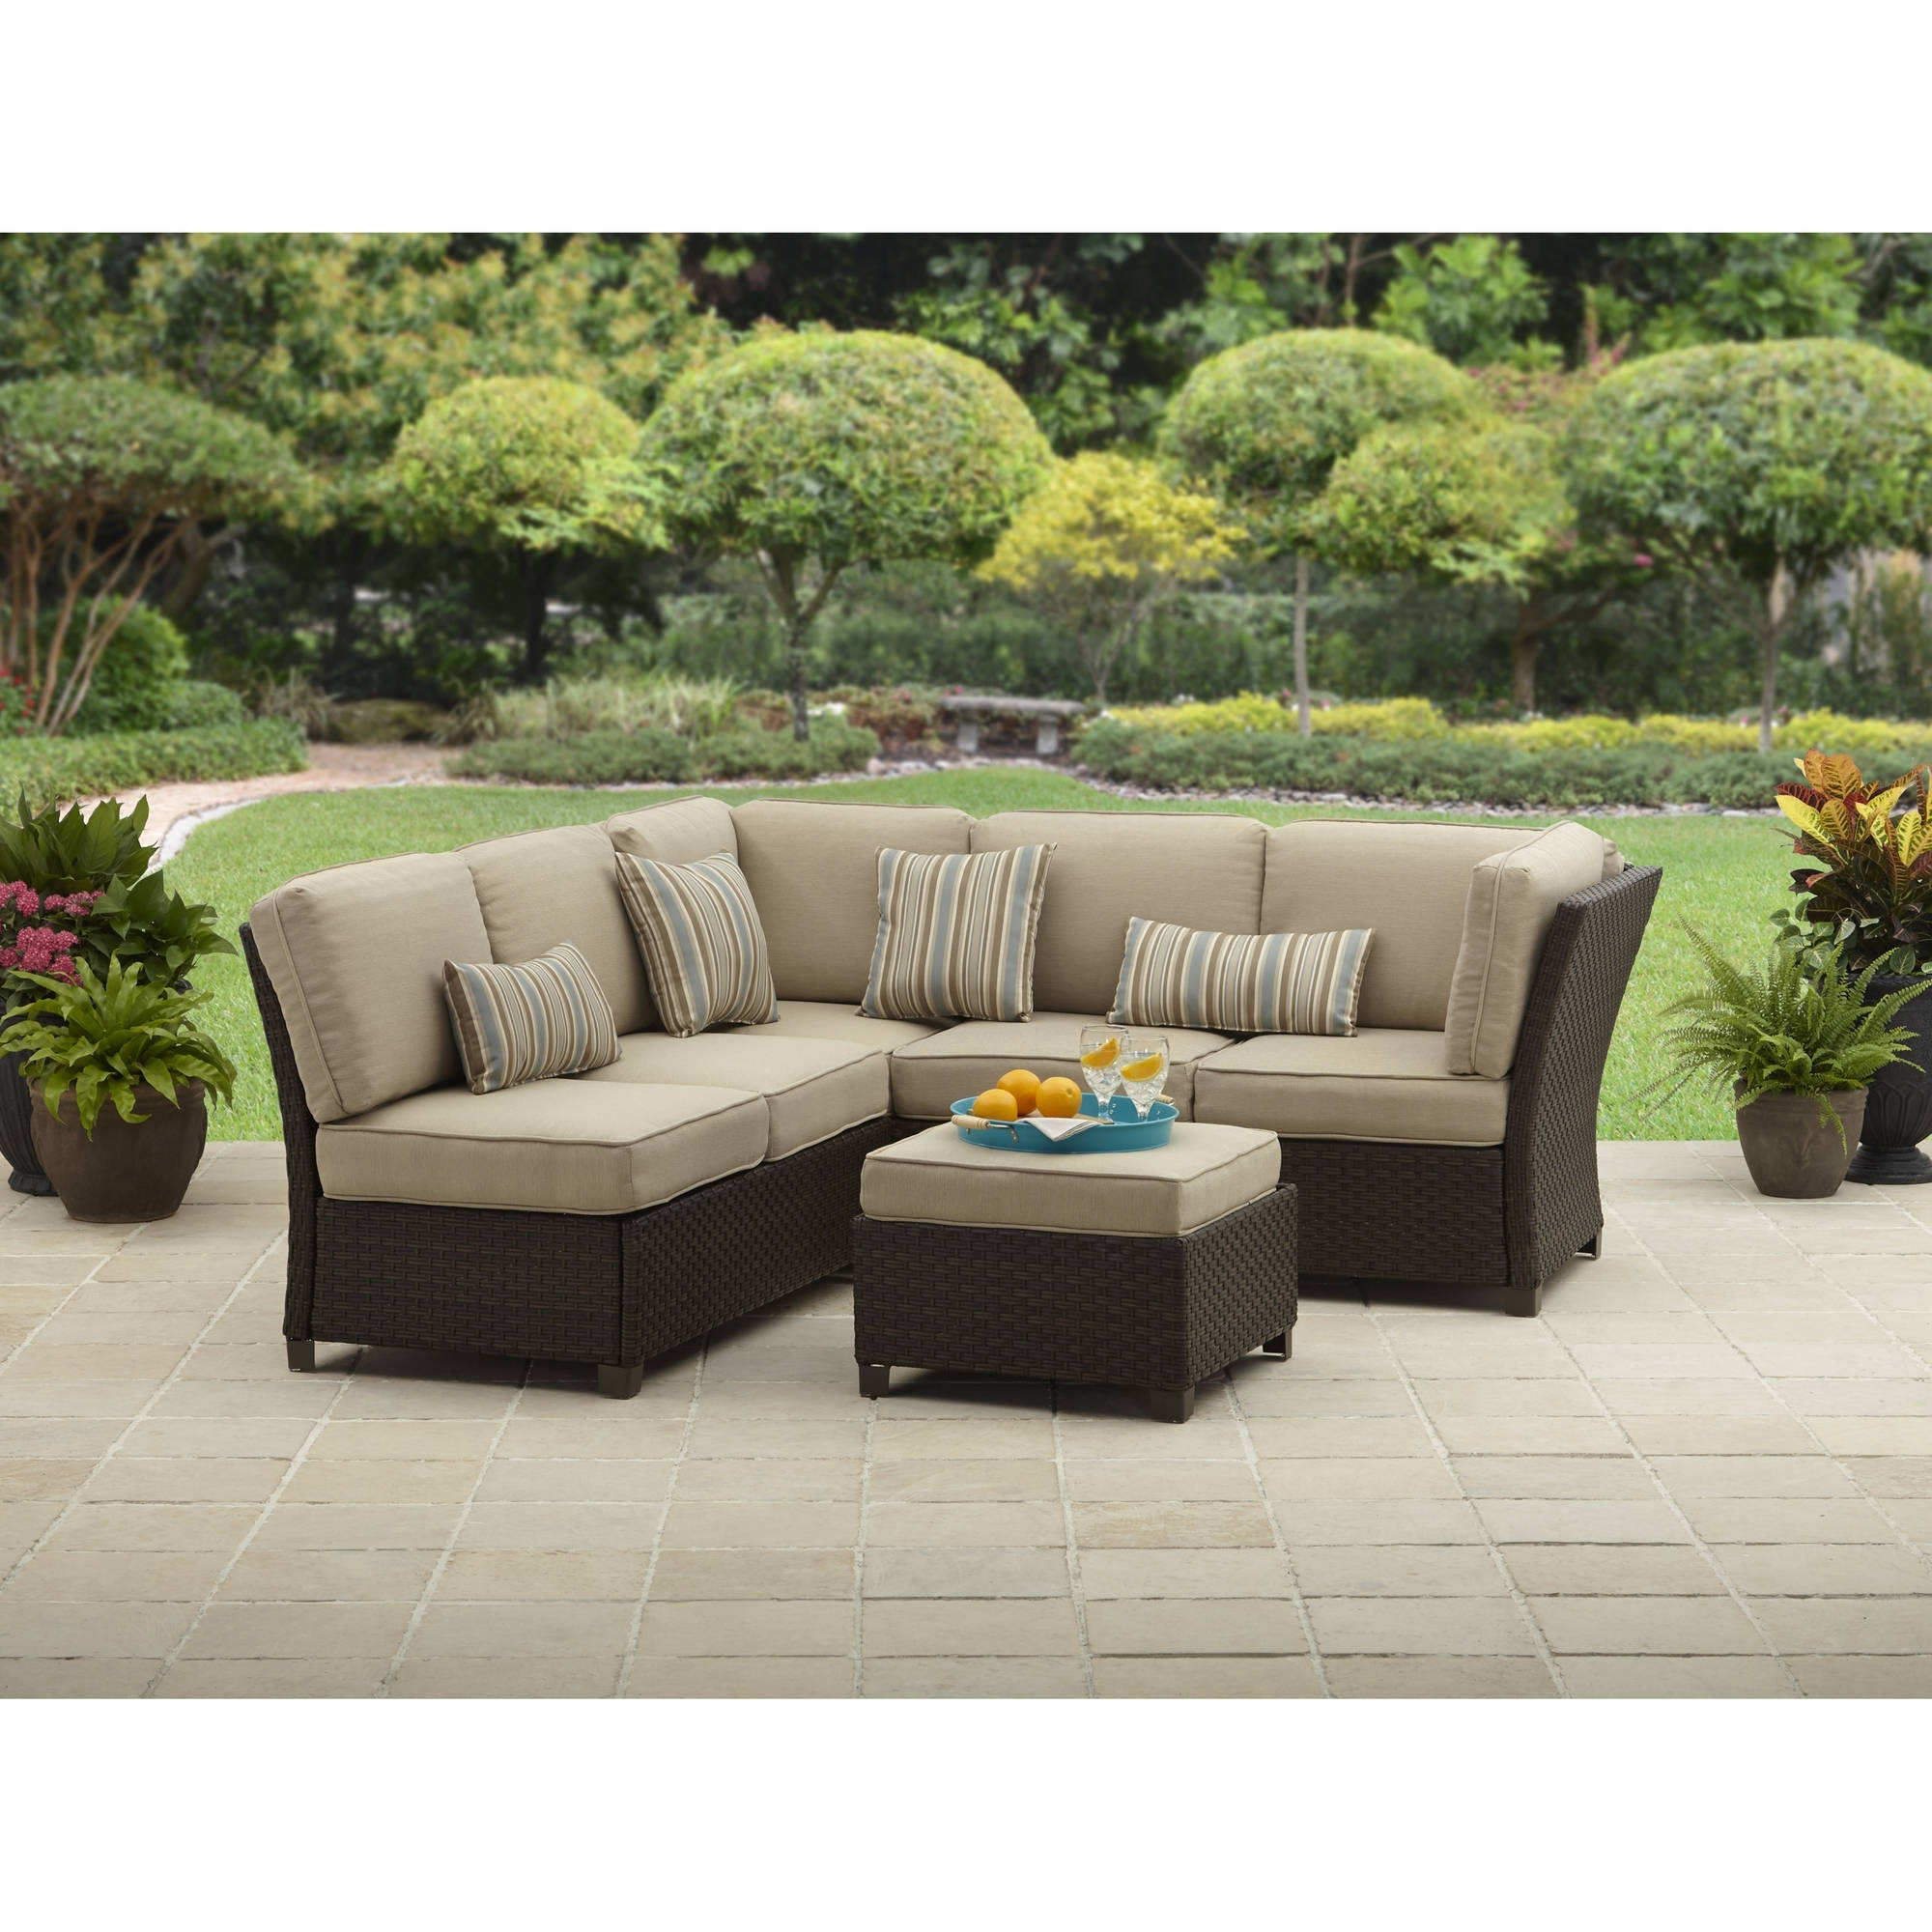 Preferred Better Homes And Gardens Cadence Wicker Outdoor Sectional Sofa Set Inside Sams Club Sectional Sofas (View 10 of 15)